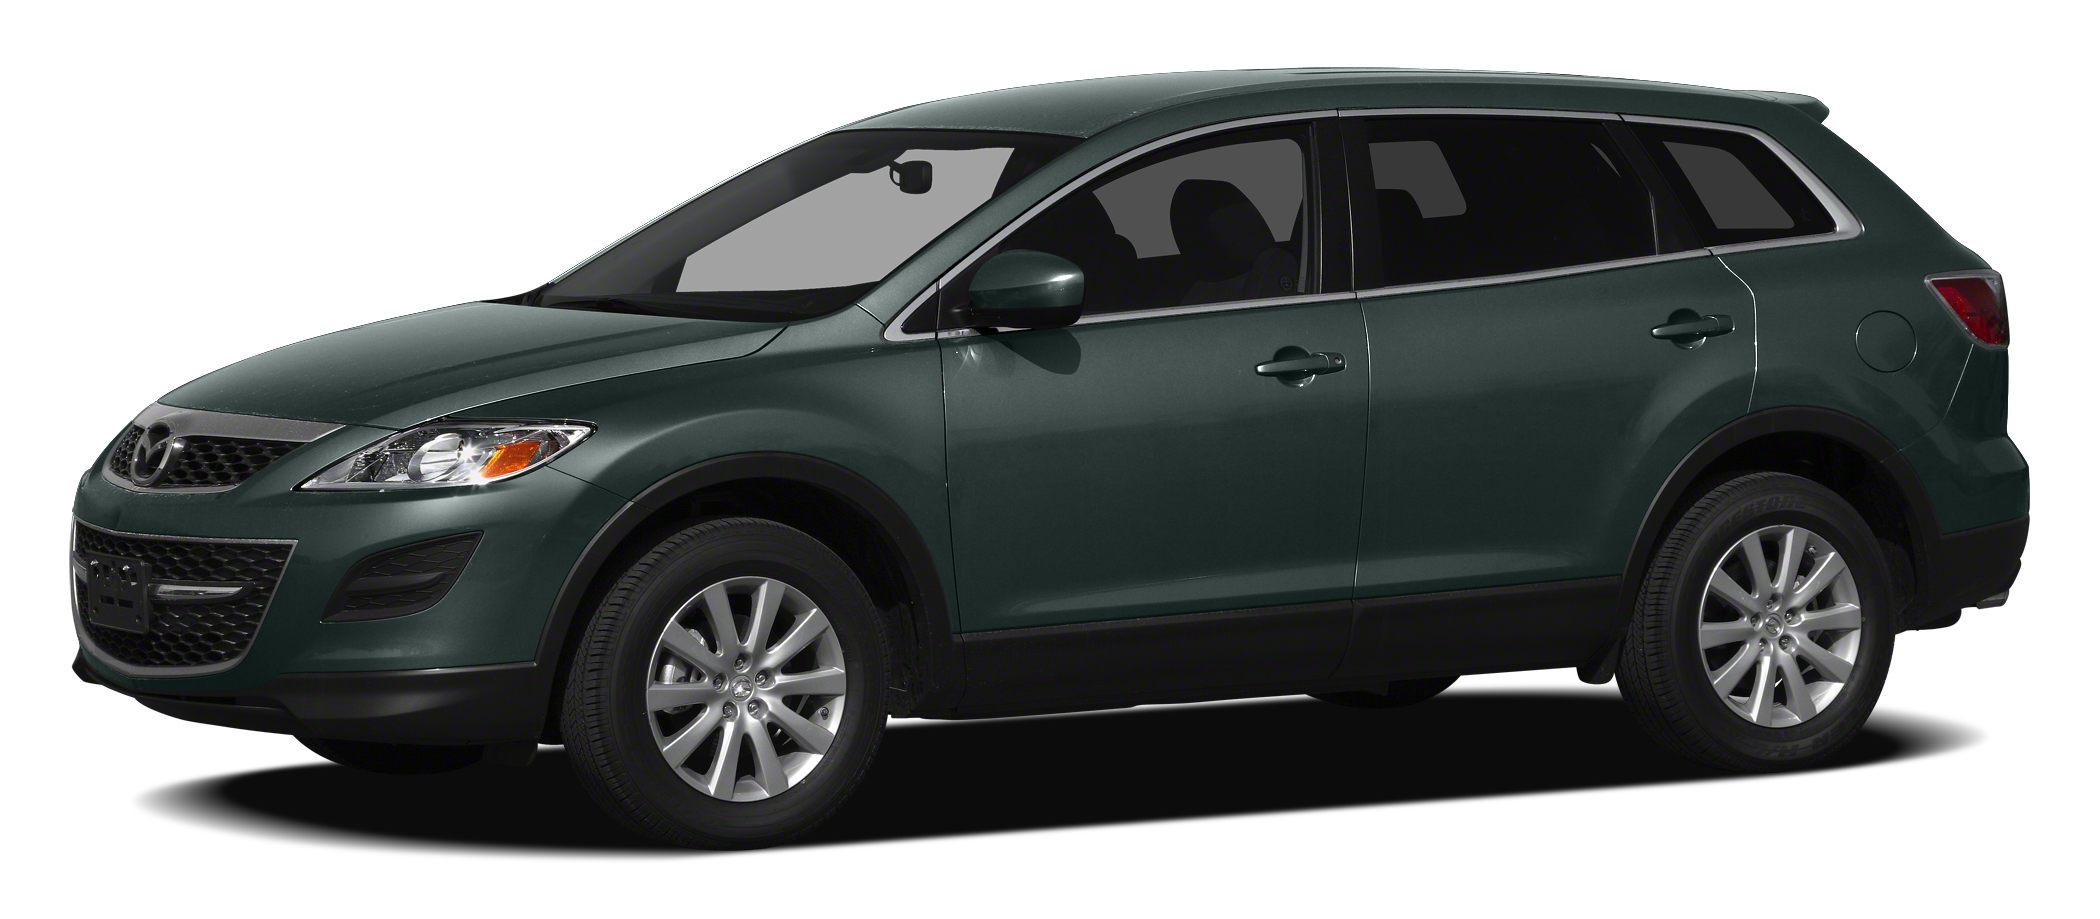 2012 Mazda CX-9 Grand Touring LEATHER NAVIGATION MOONROOF AND MORE MULLINAX CERTIFIED PRE-OW